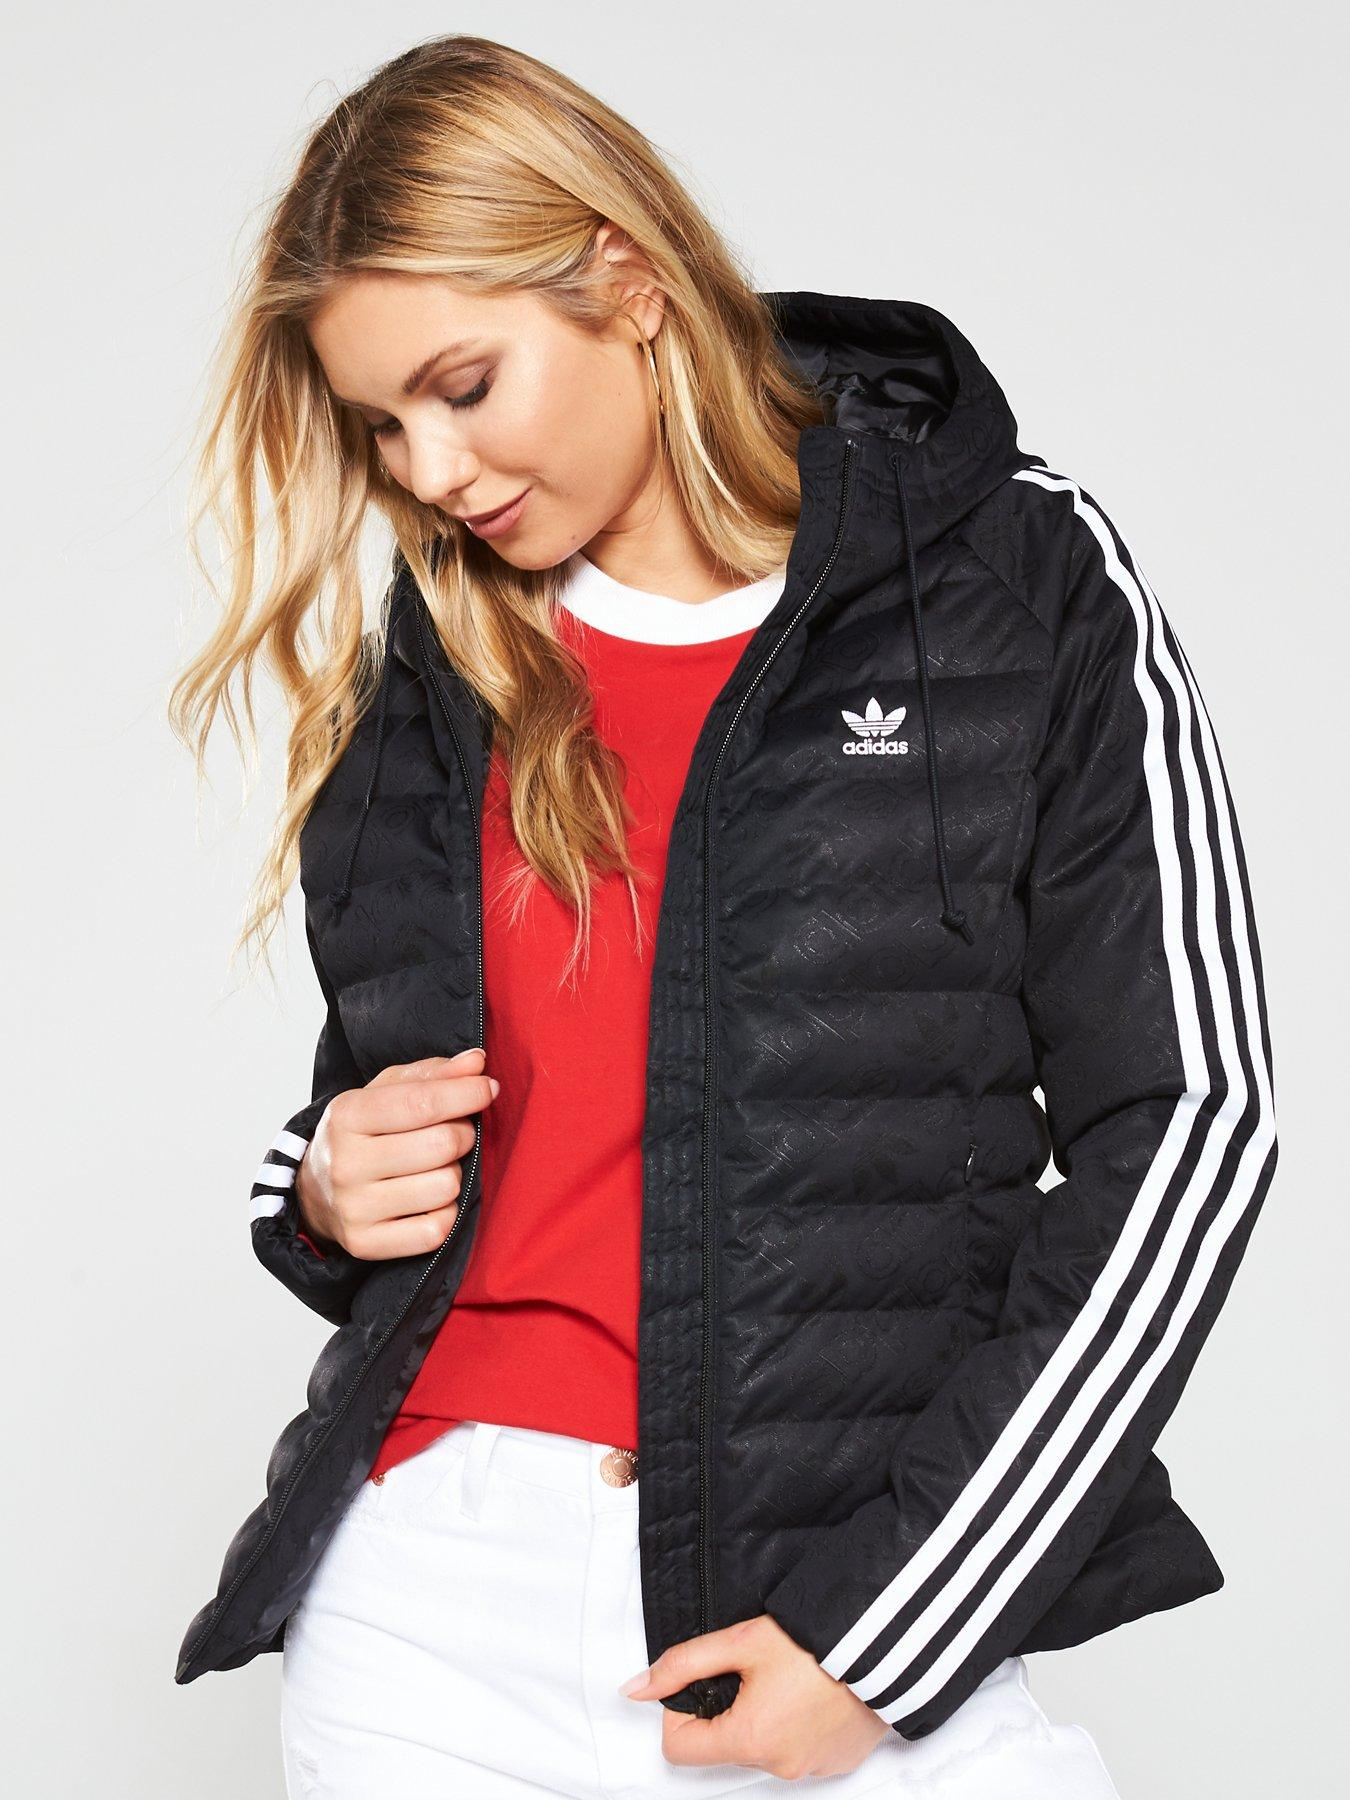 Adidas | Womens sports clothing | Sports & leisure | www